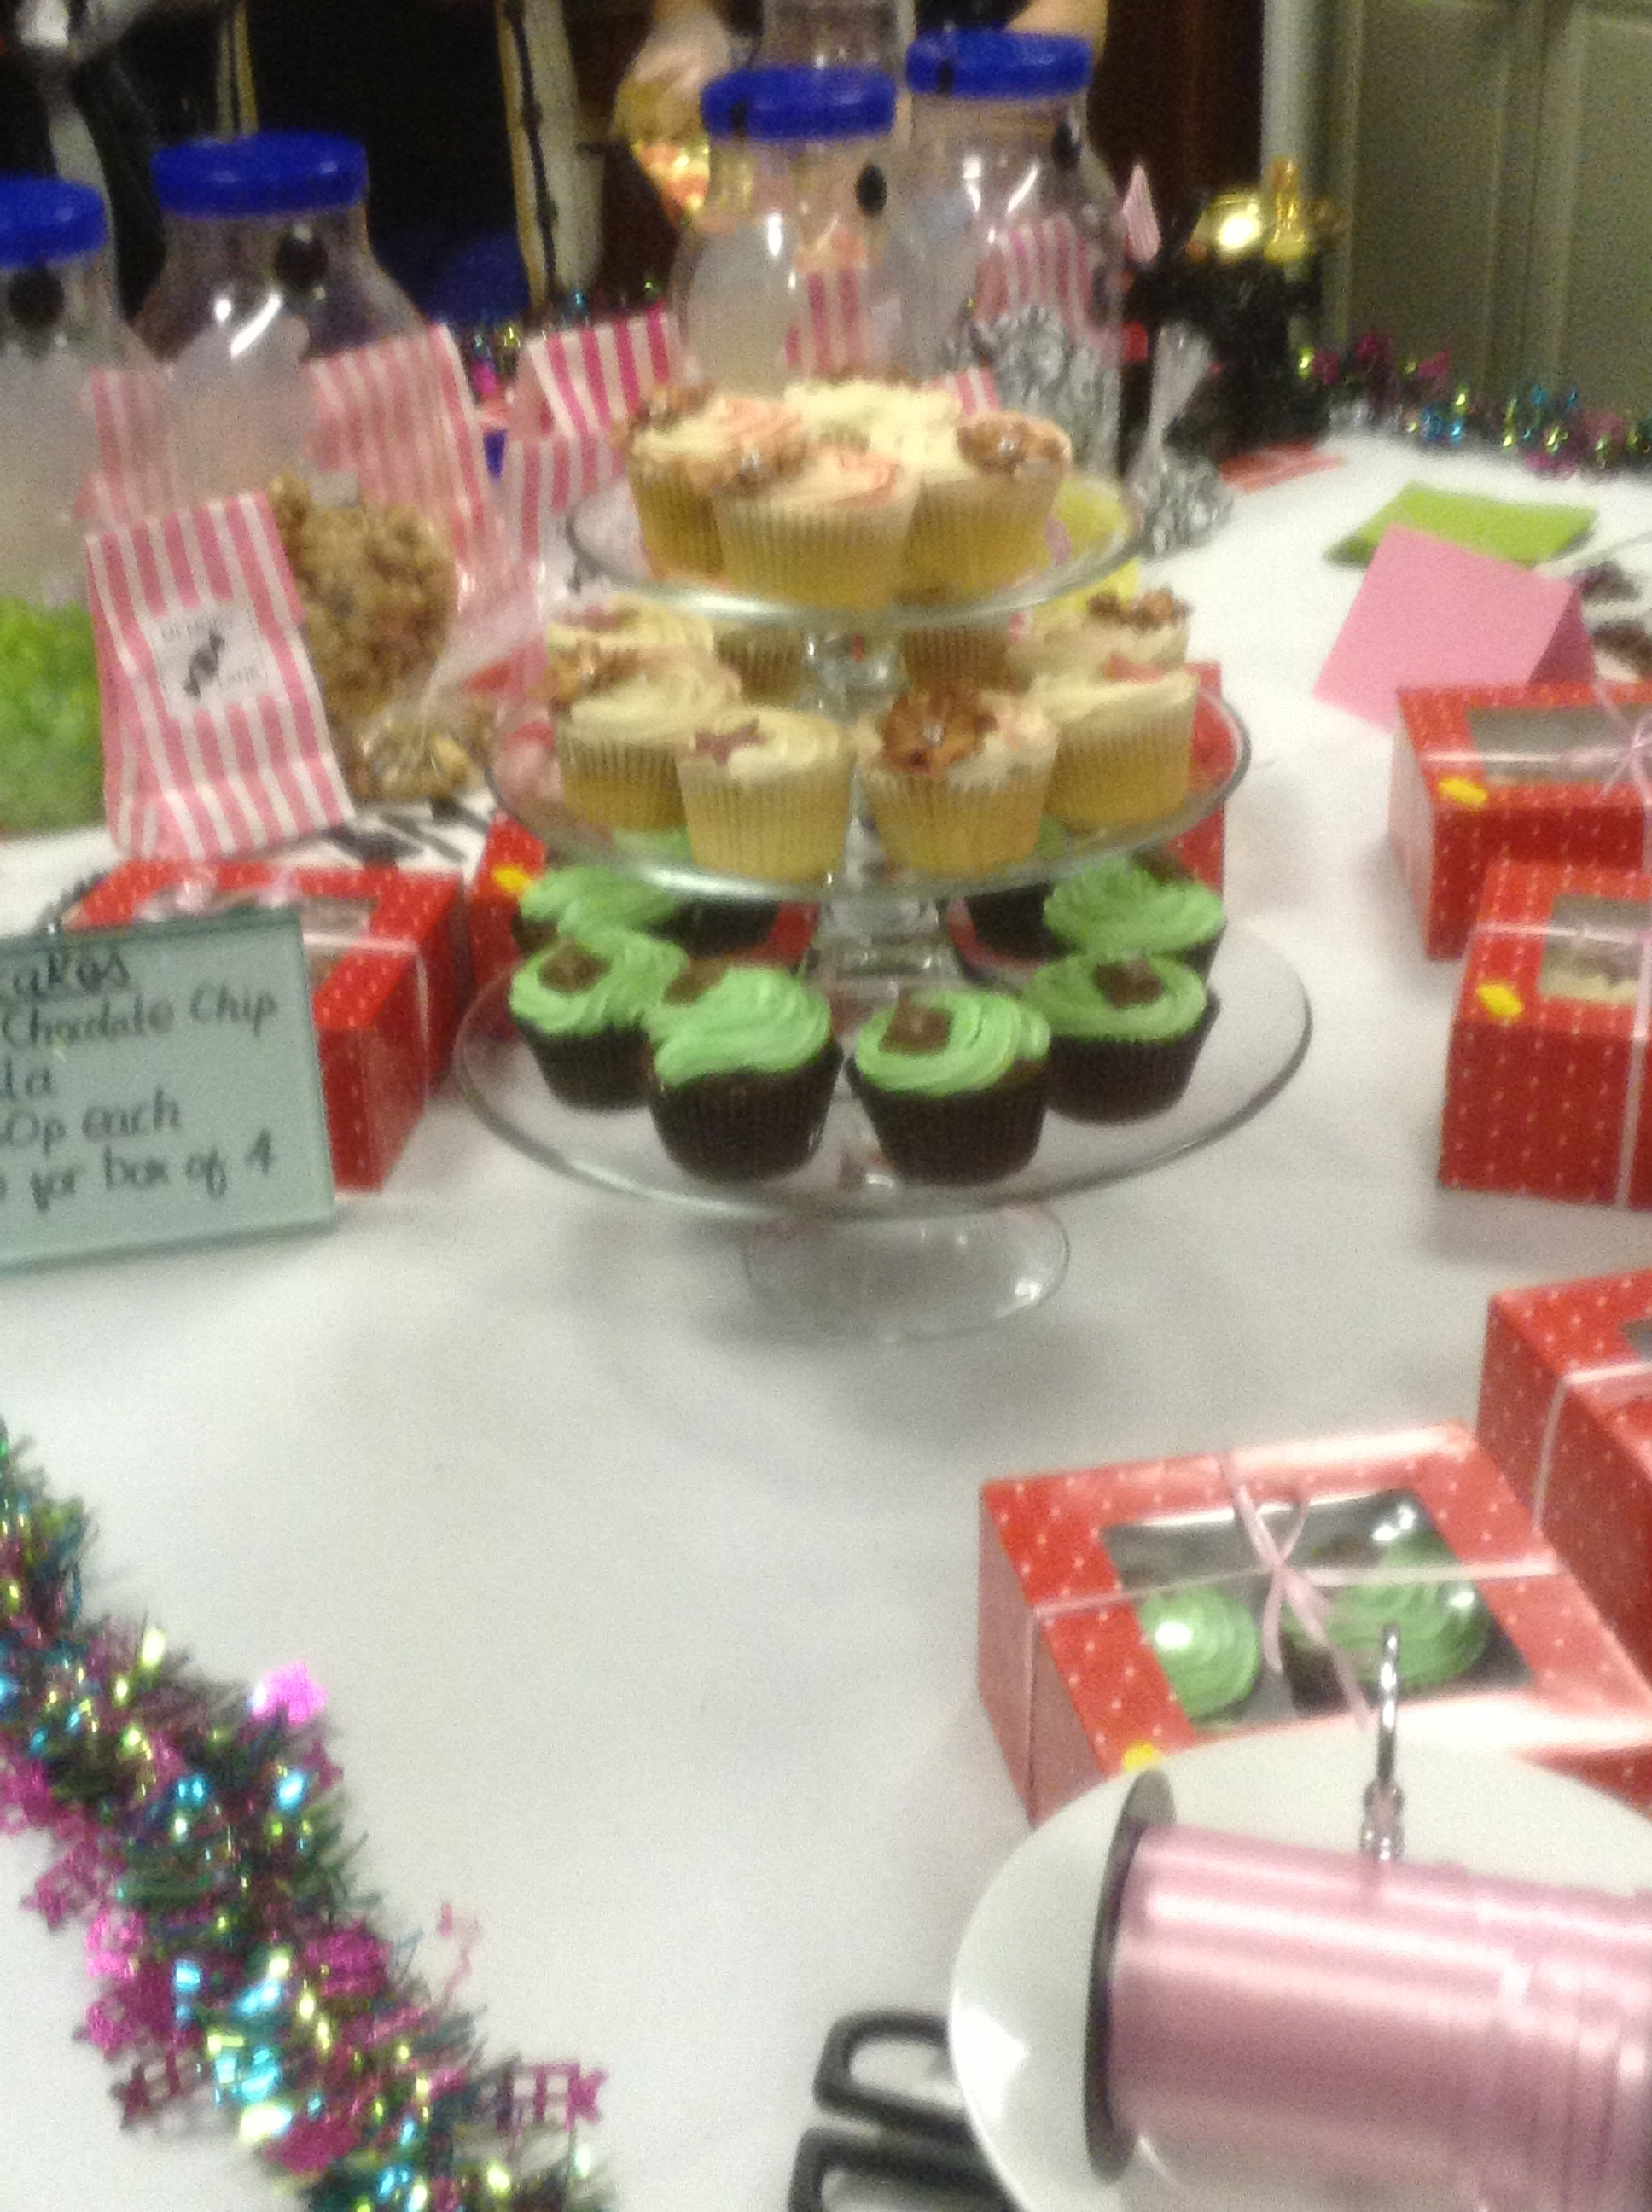 There were many tasty treats on offer!